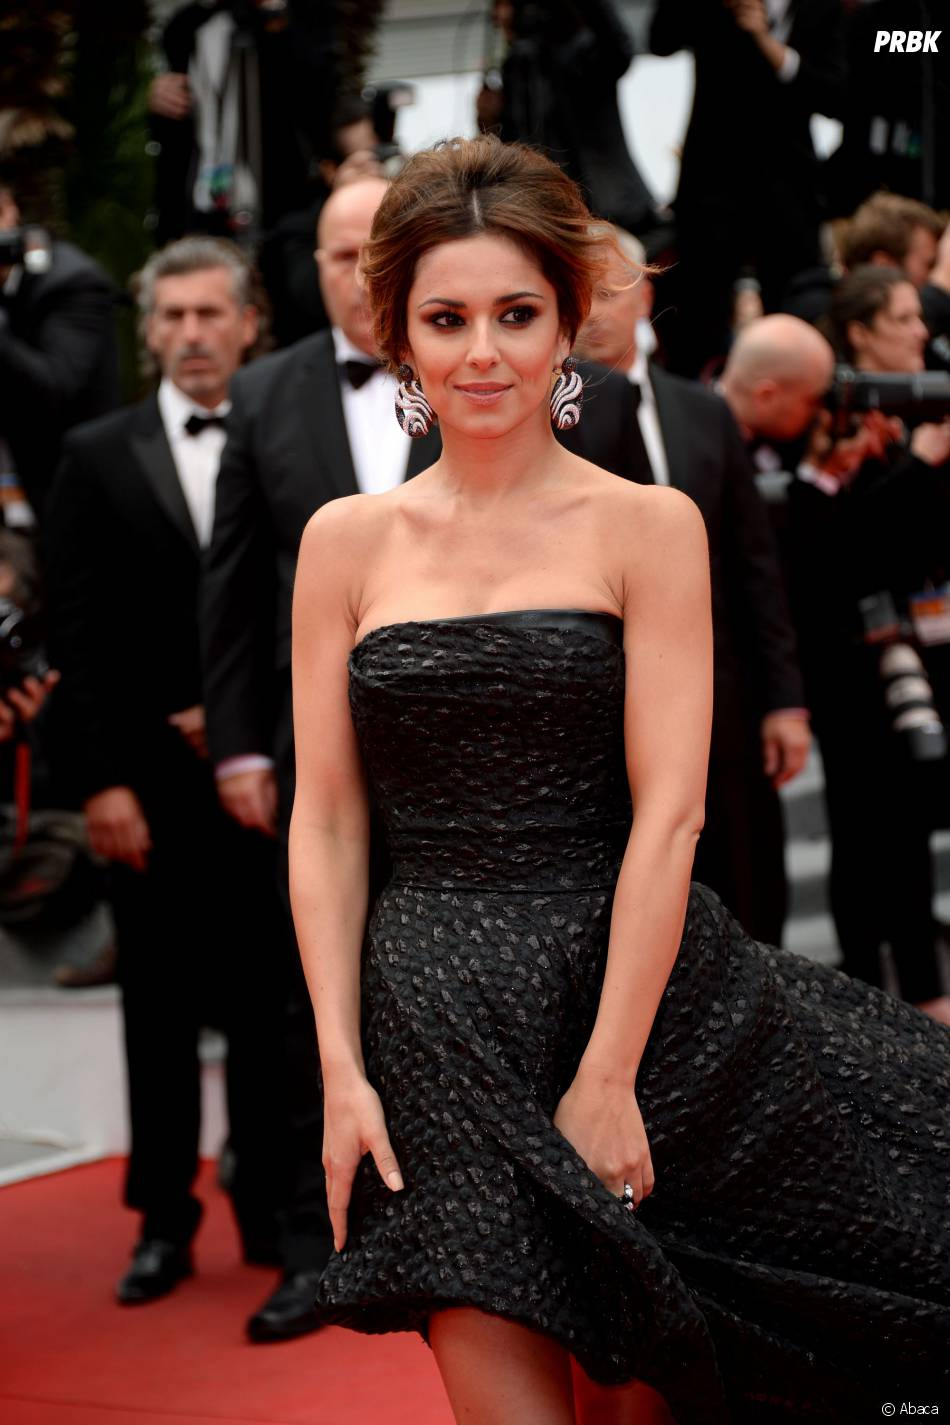 Cheryl Cole sublime en Saint Laurent sur le tapis rouge de Cannes, le 19 mai 2014